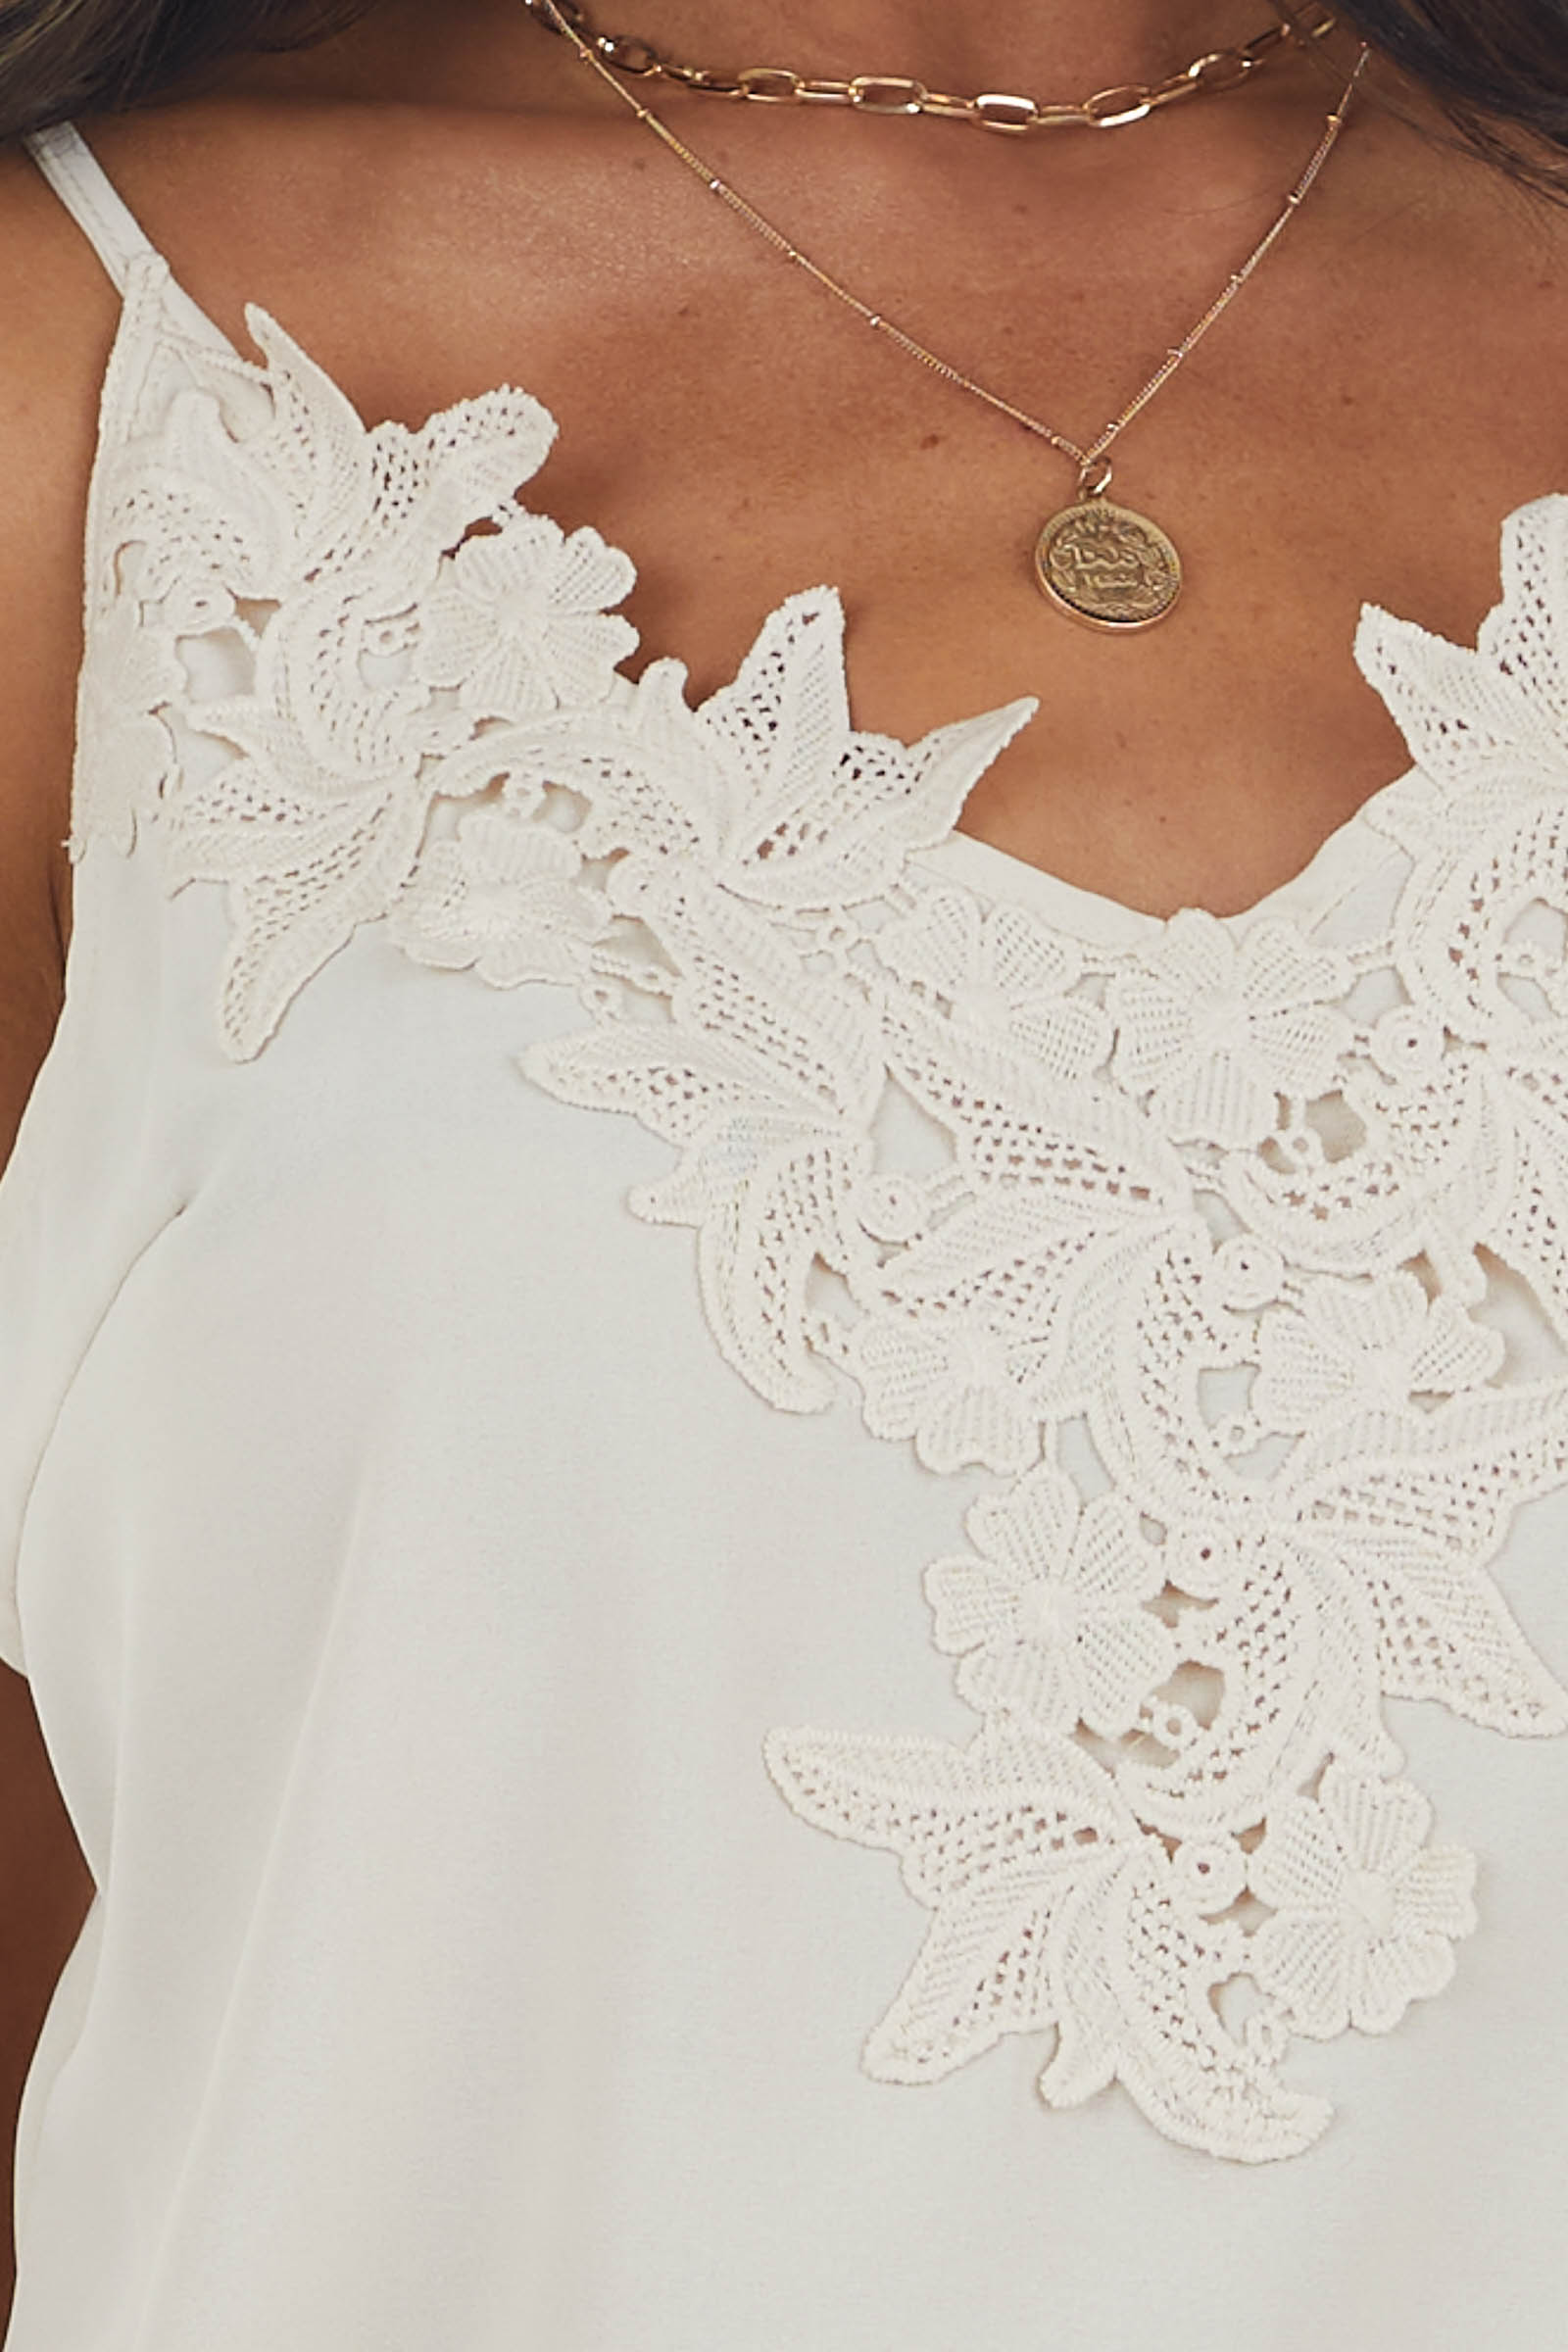 Cream Woven Camisole with Floral Lace V Neck